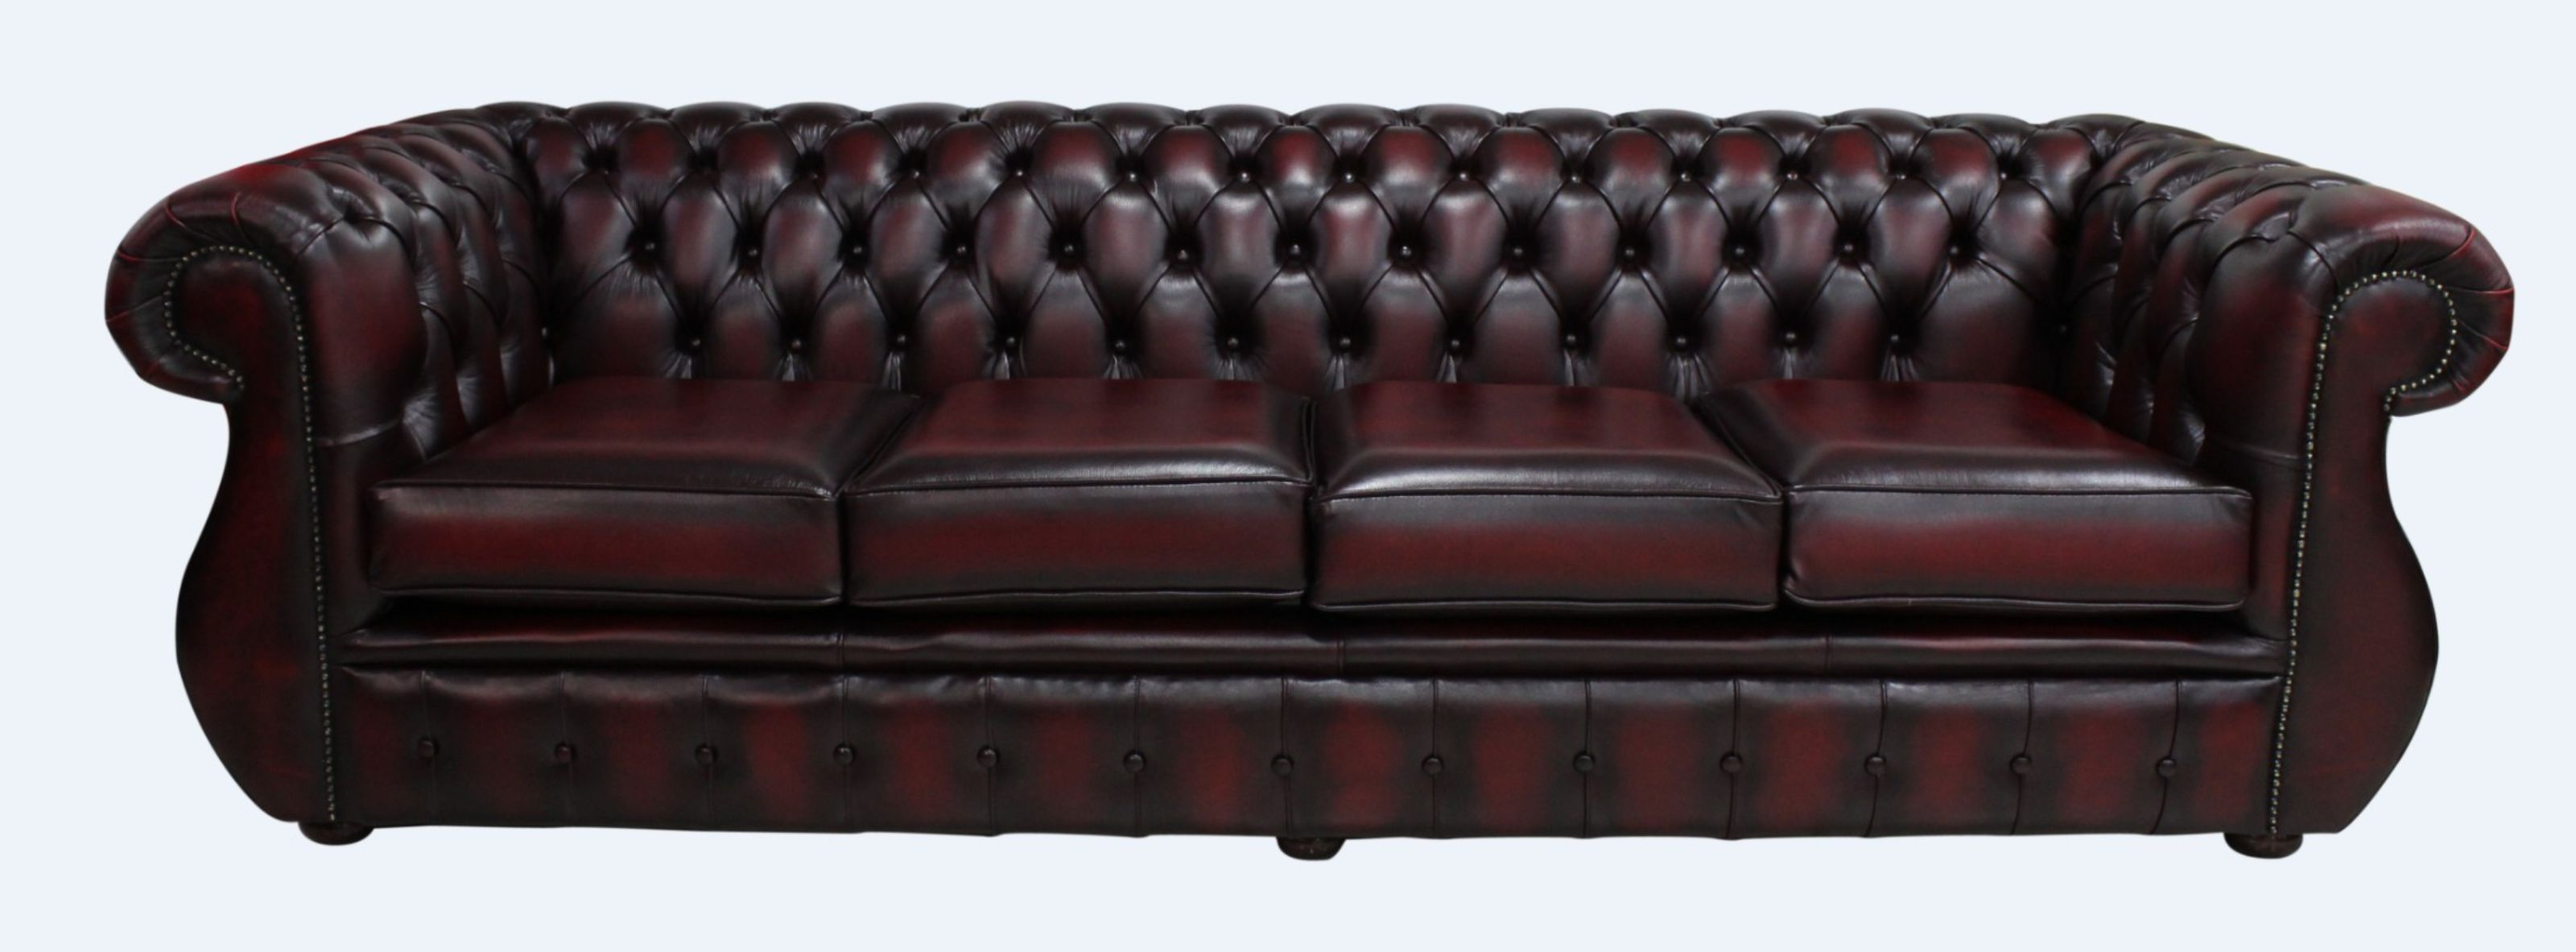 Awe Inspiring Chesterfield Kimberley 4 Seater Antique Oxblood Leather Sofa Offer Uwap Interior Chair Design Uwaporg